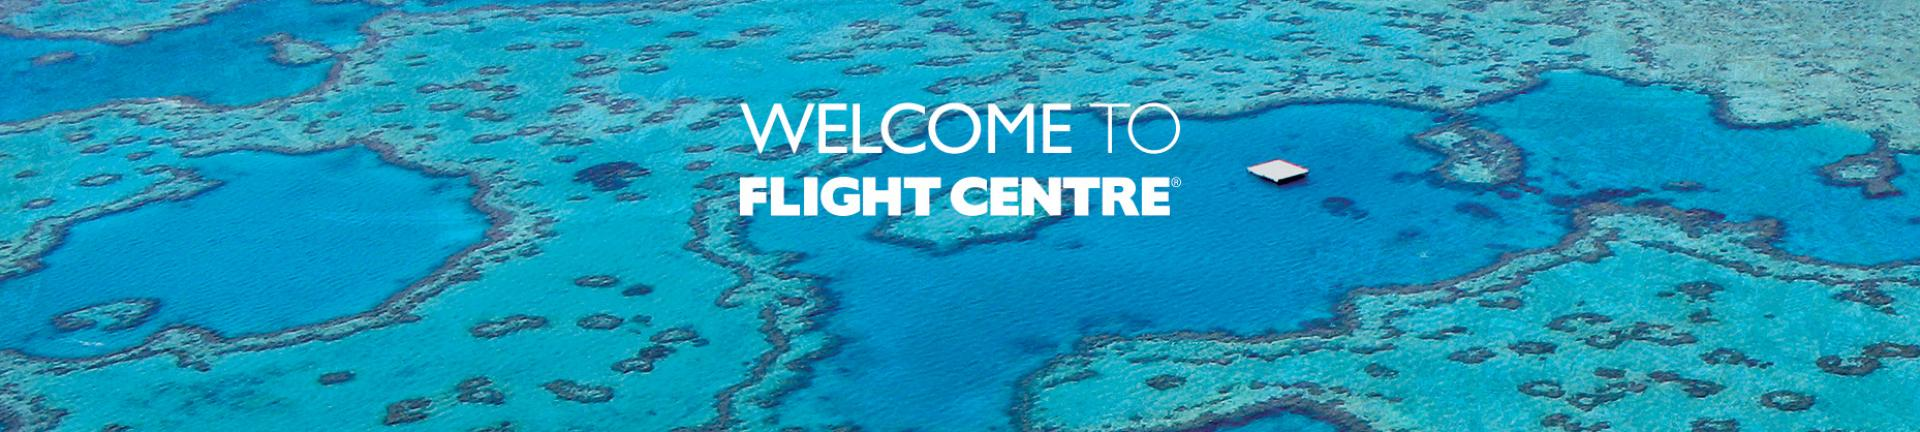 Welcome to Flight Centre